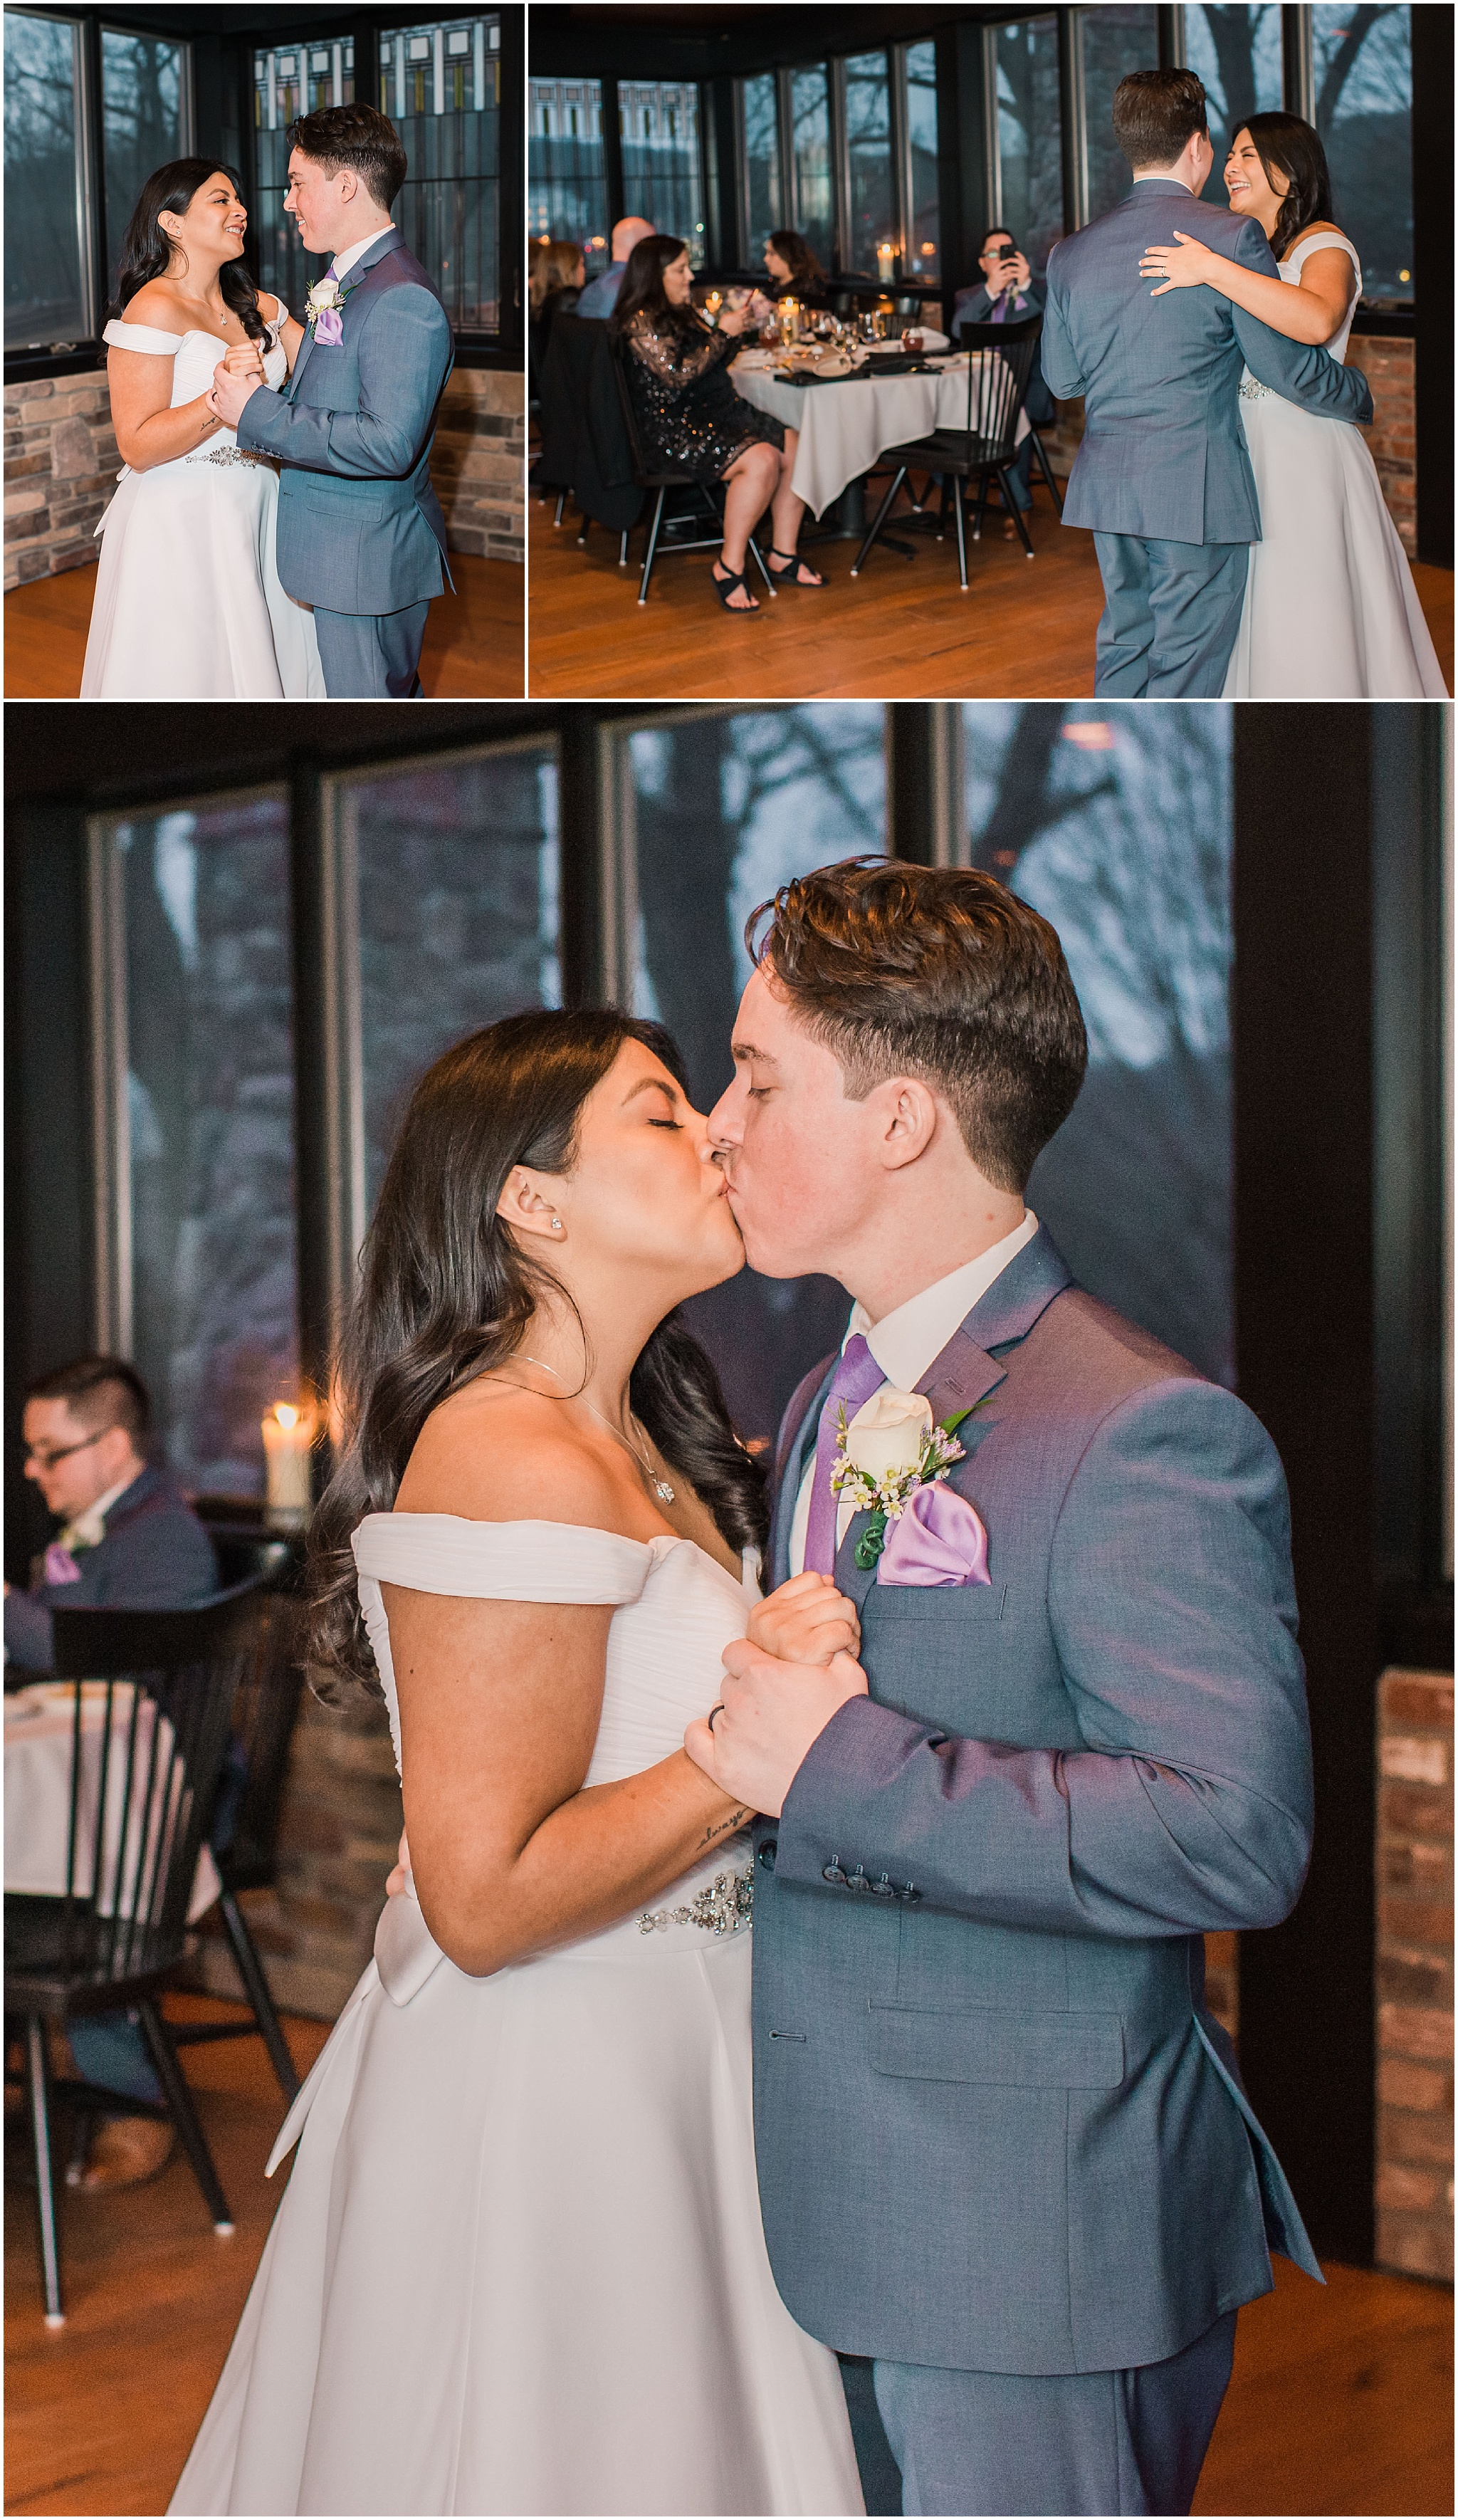 bride and groom sharing their first dance as husband and wife for their intimate wedding ceremony in the mountains of New Jersey, elopement